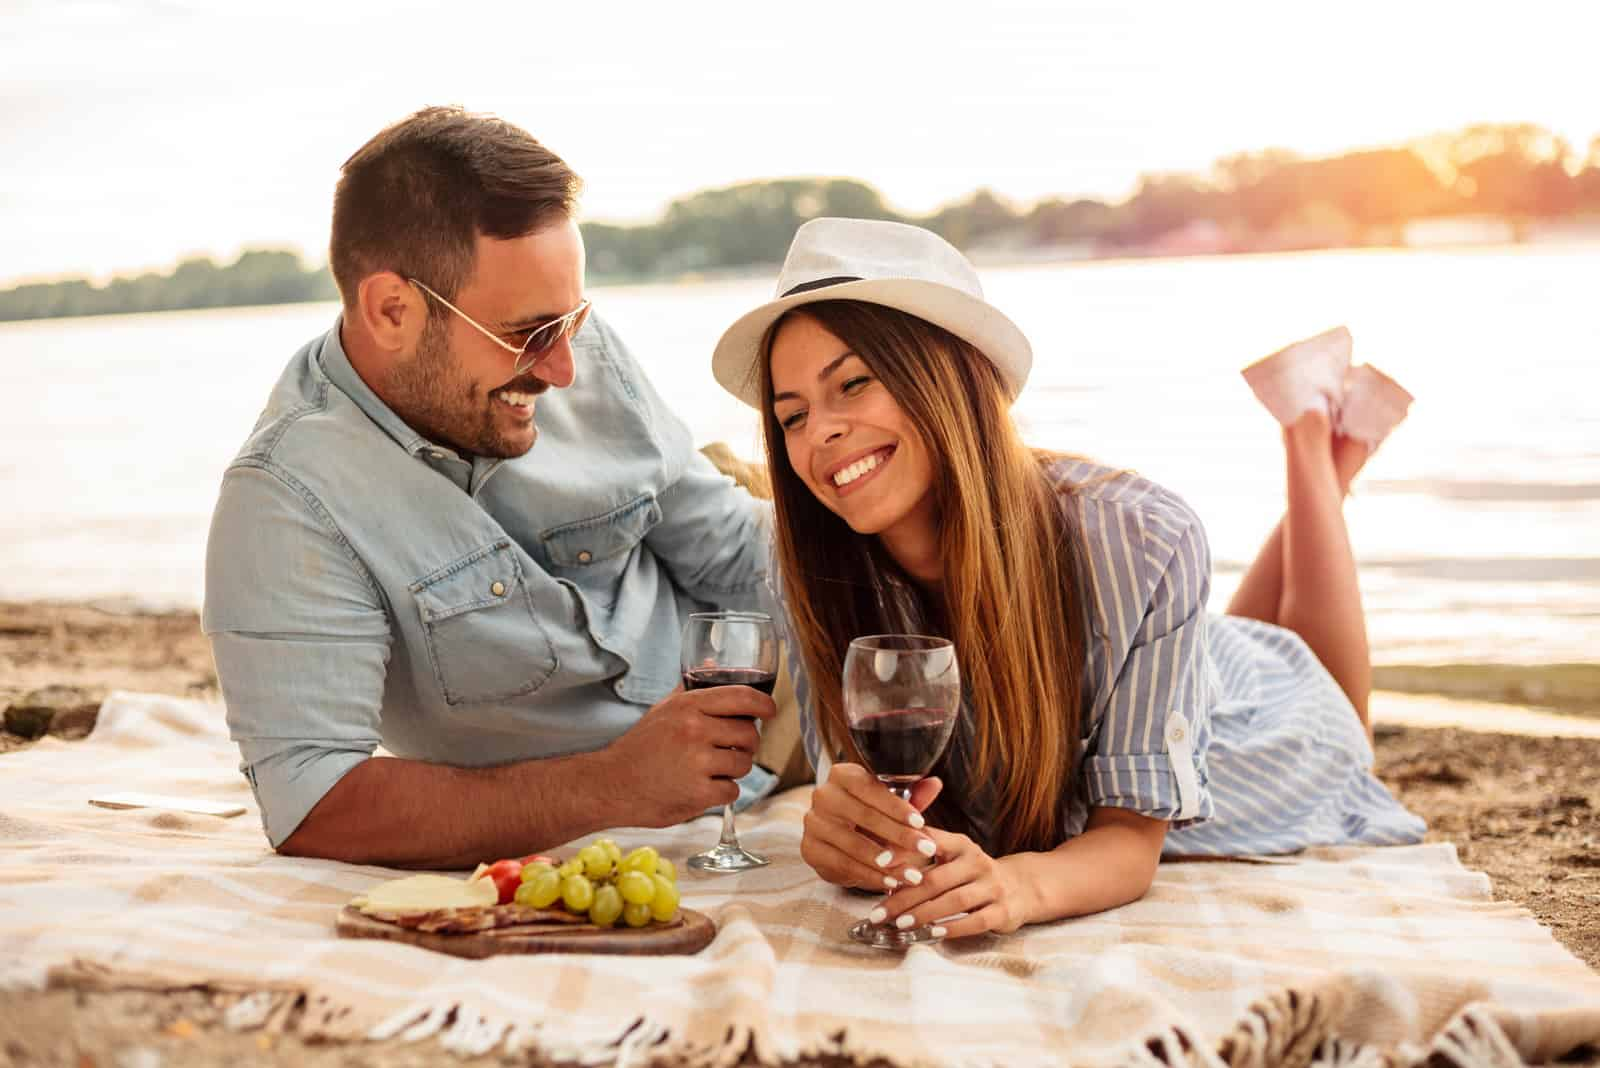 a smiling man and woman lie on the beach and drink wine